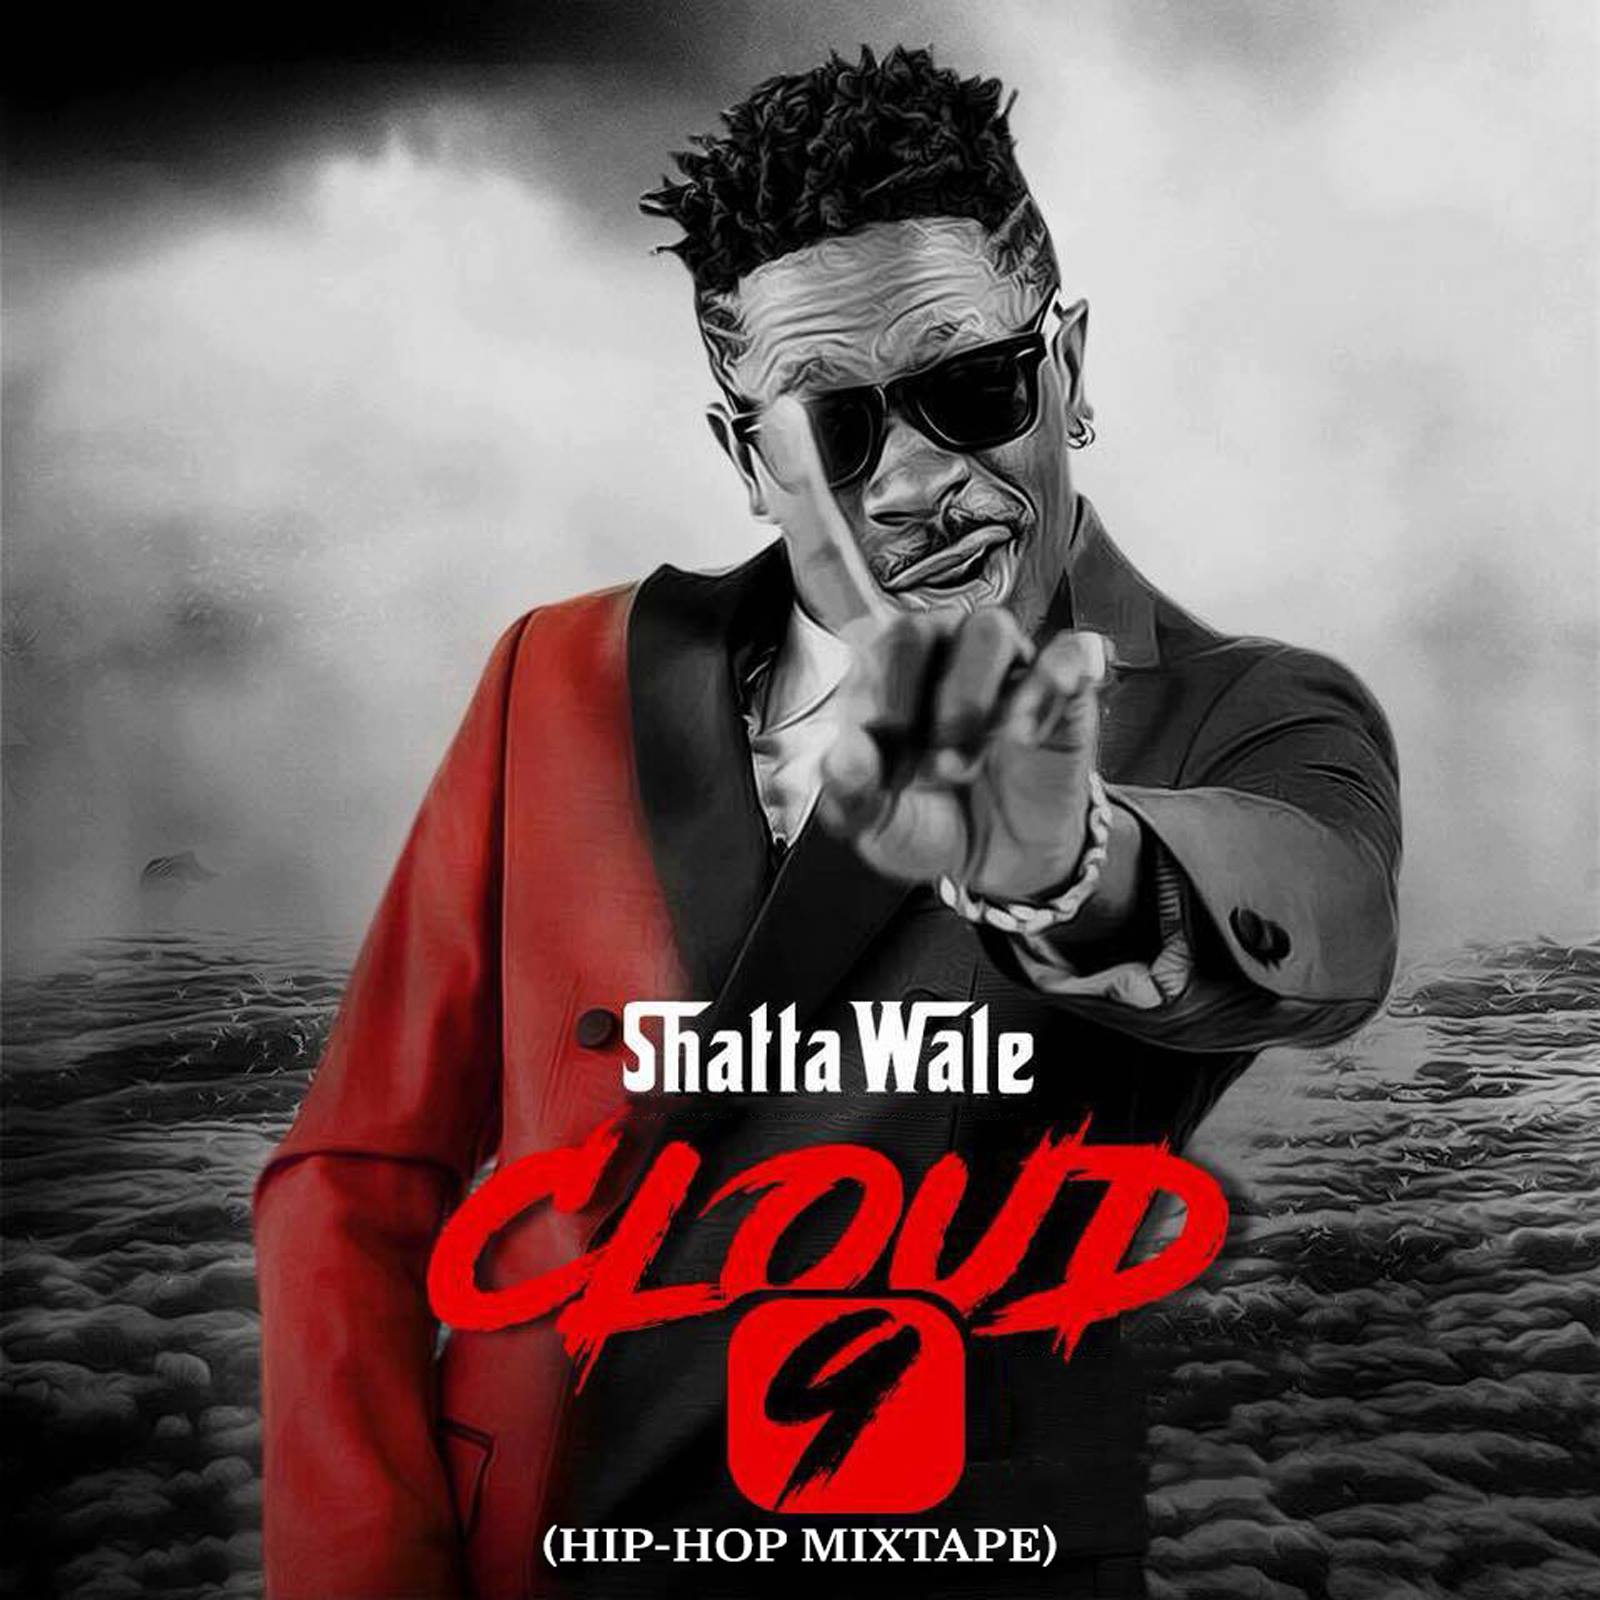 Cloud 9 (Hiphop Mixtape) by Shatta Wale